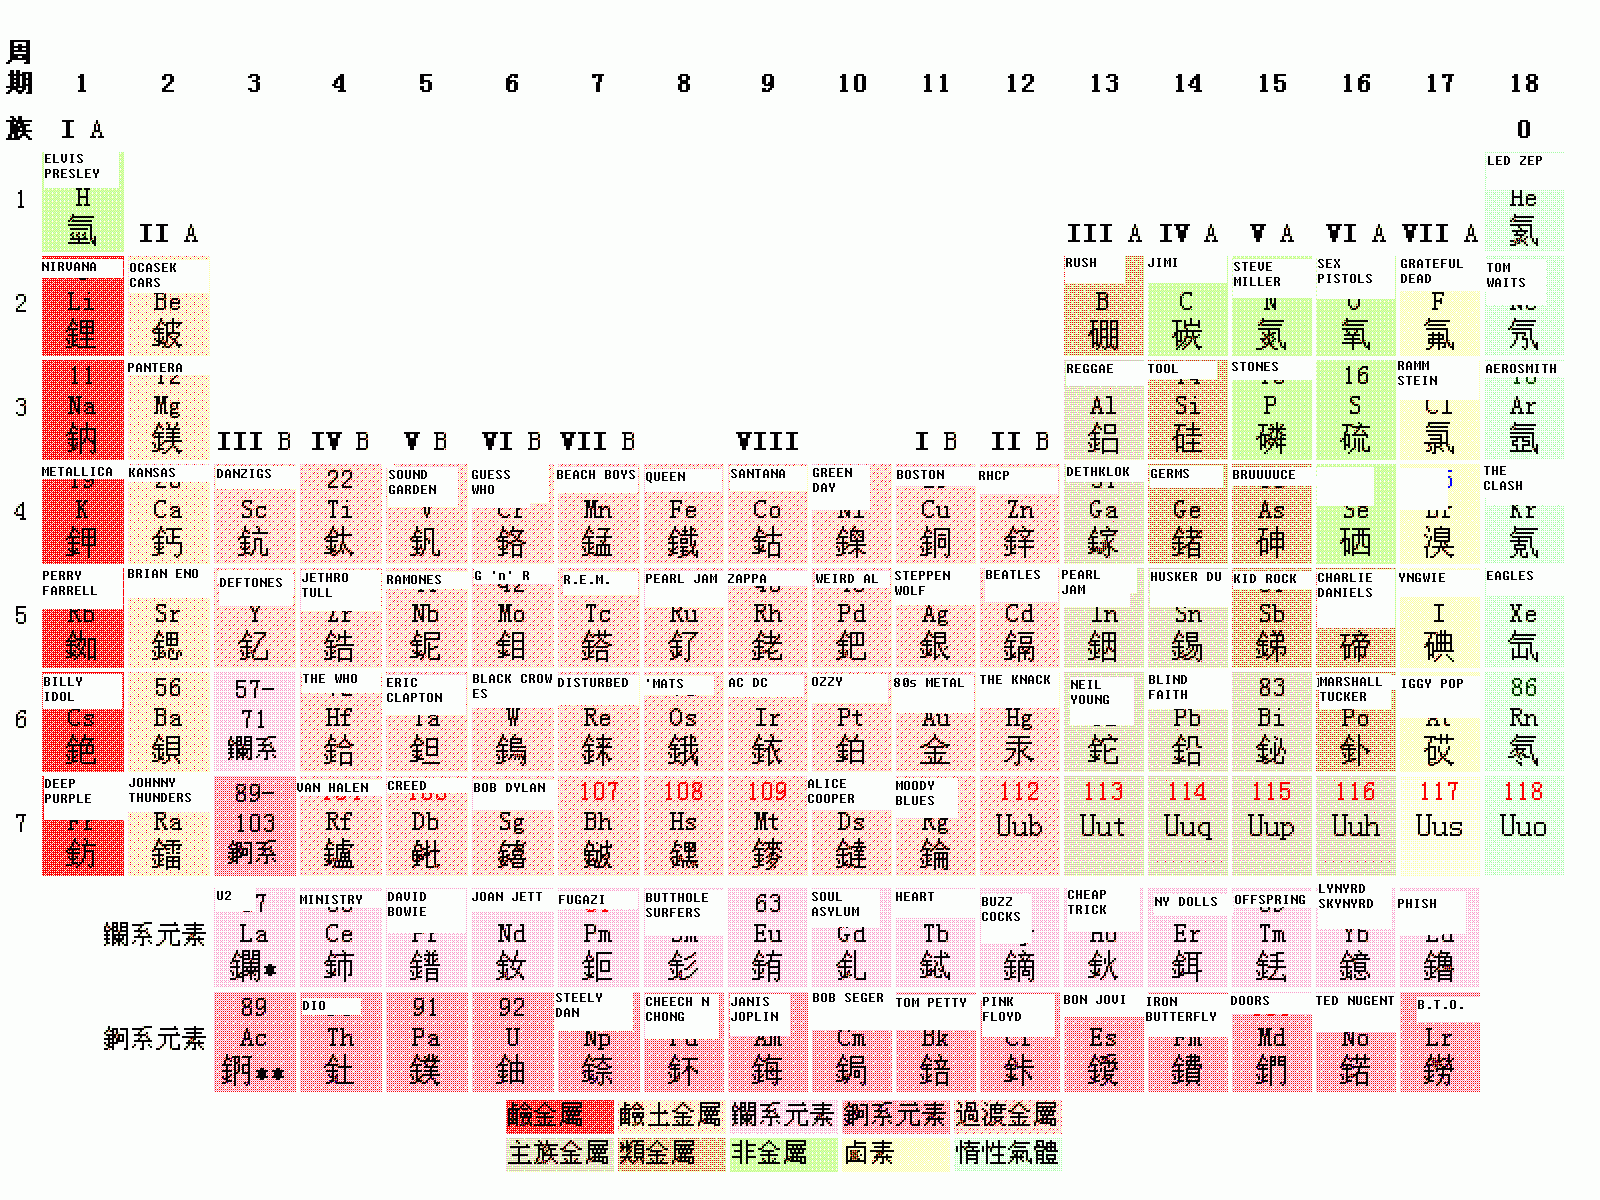 Fileperiodic table of rockg wikipedia fileperiodic table of rockg urtaz Image collections